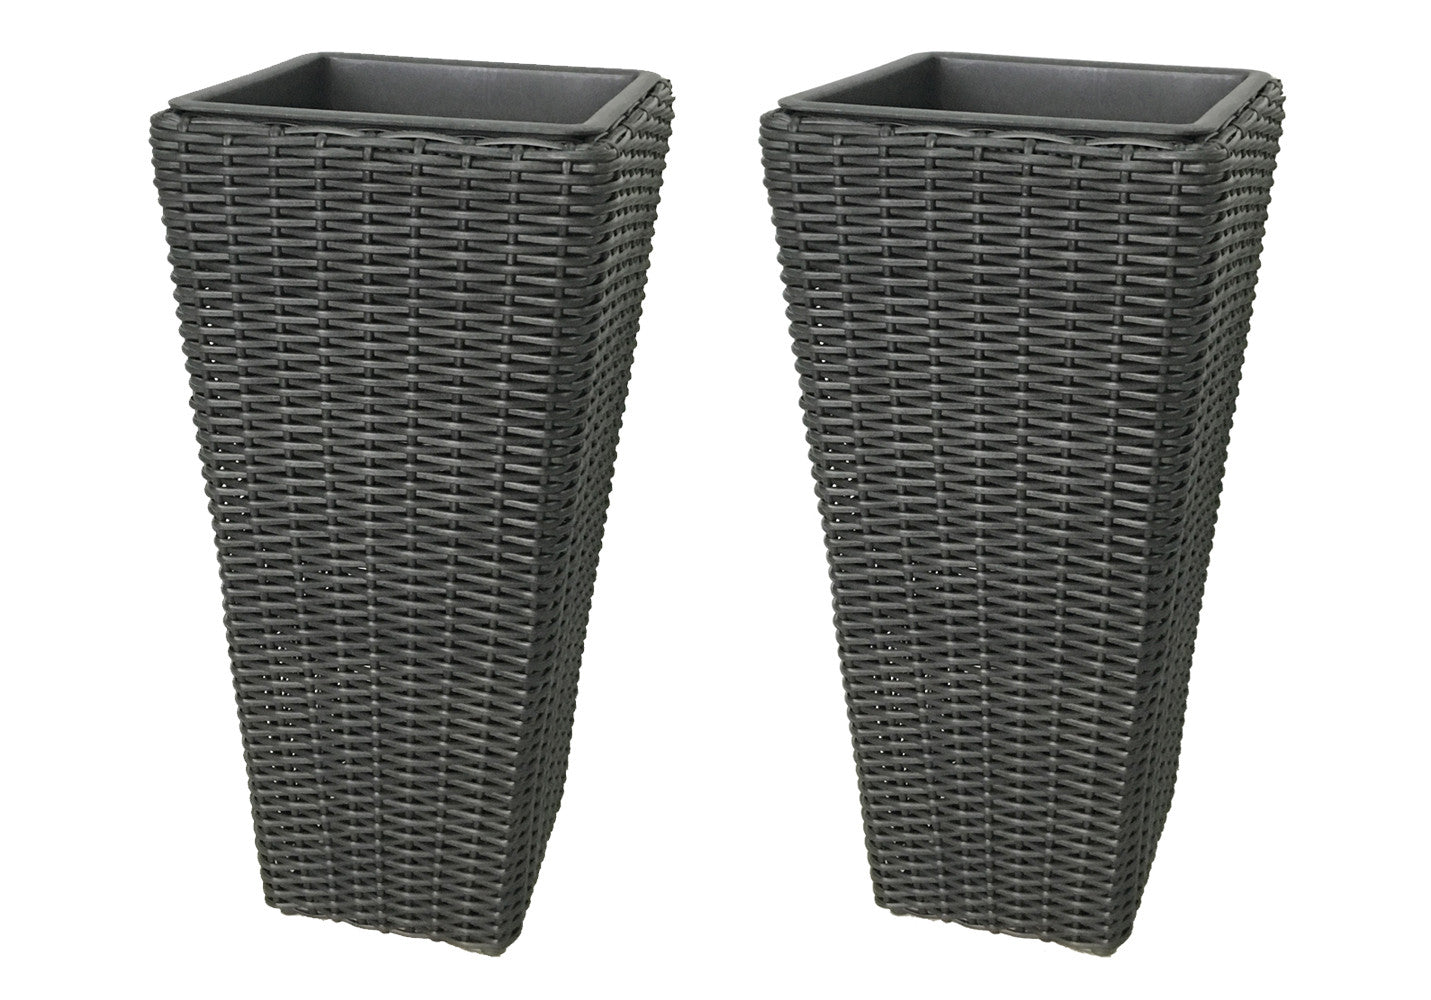 Grapevine large square resin planters 2 pack